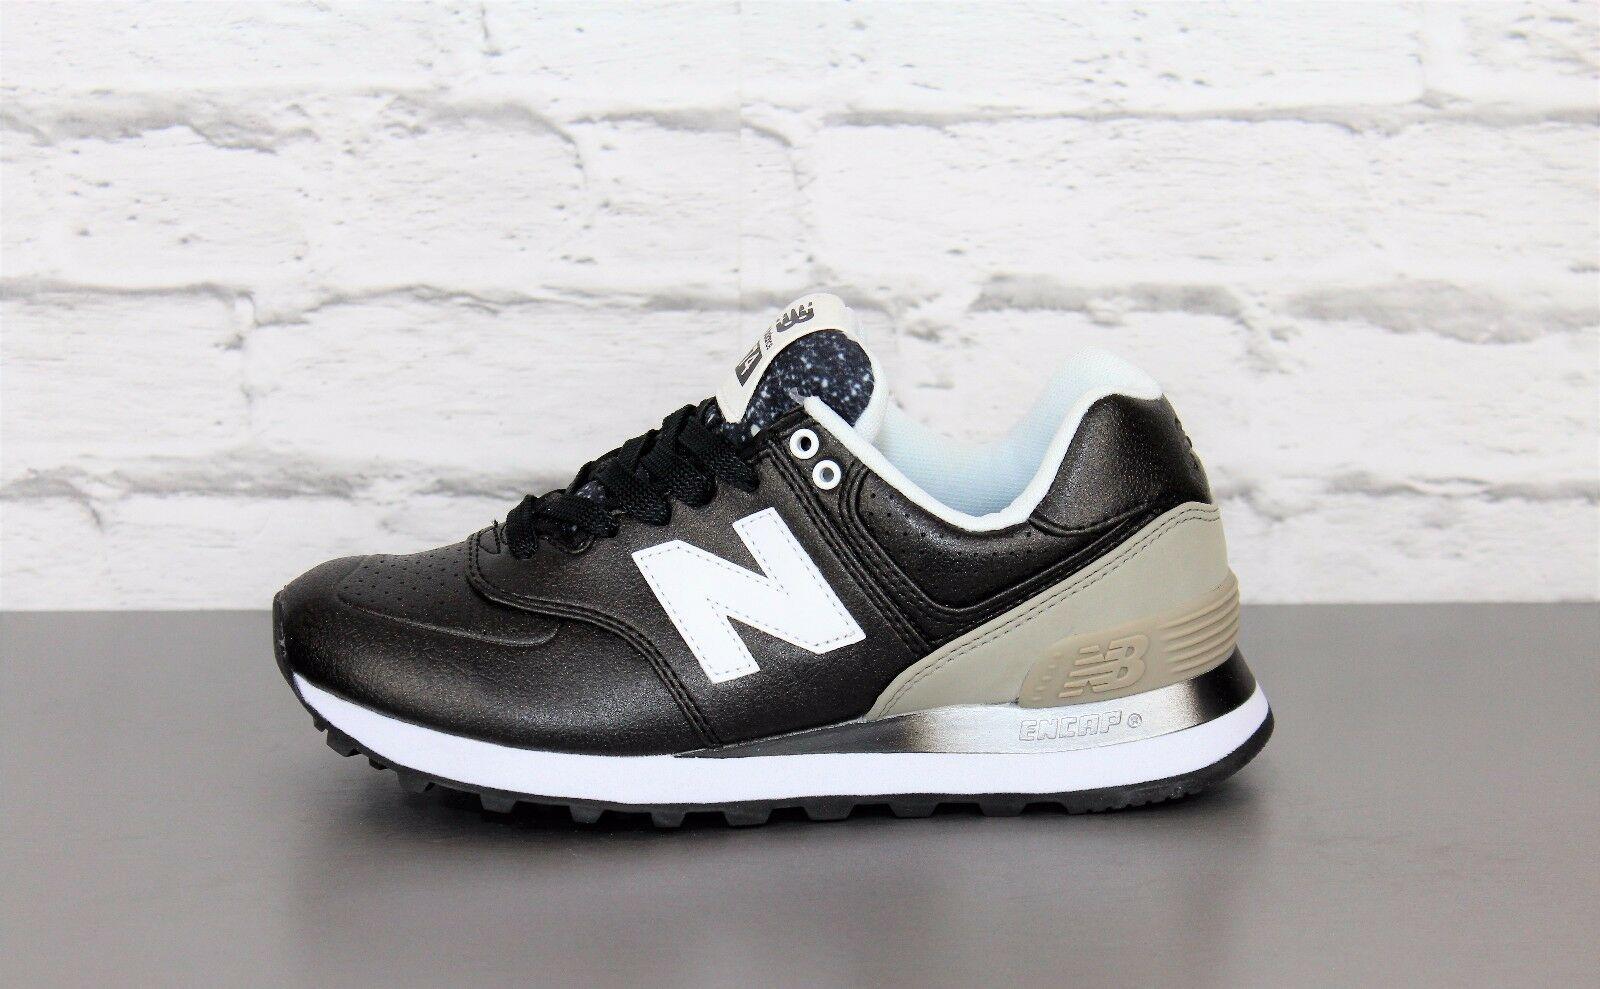 NEW BALANCE WL 574 RAA Women Scarpe Black Grey wl574raa Sneaker Donna 373 565